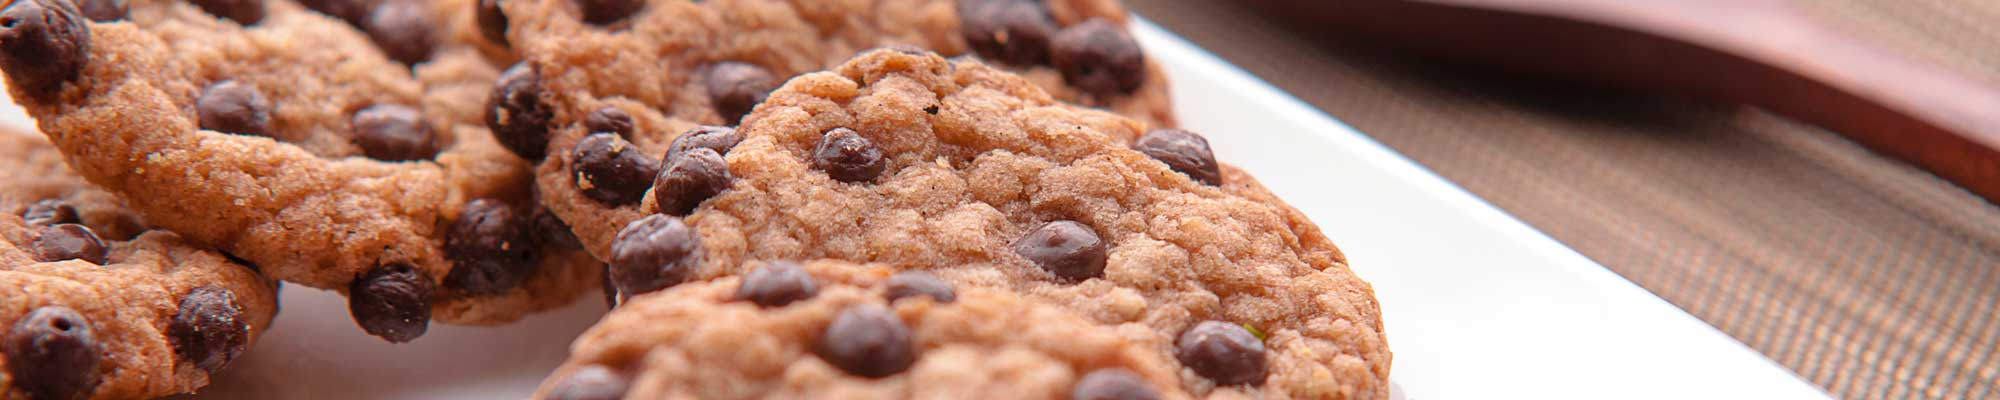 A delicious plate of chocolate chip cookies